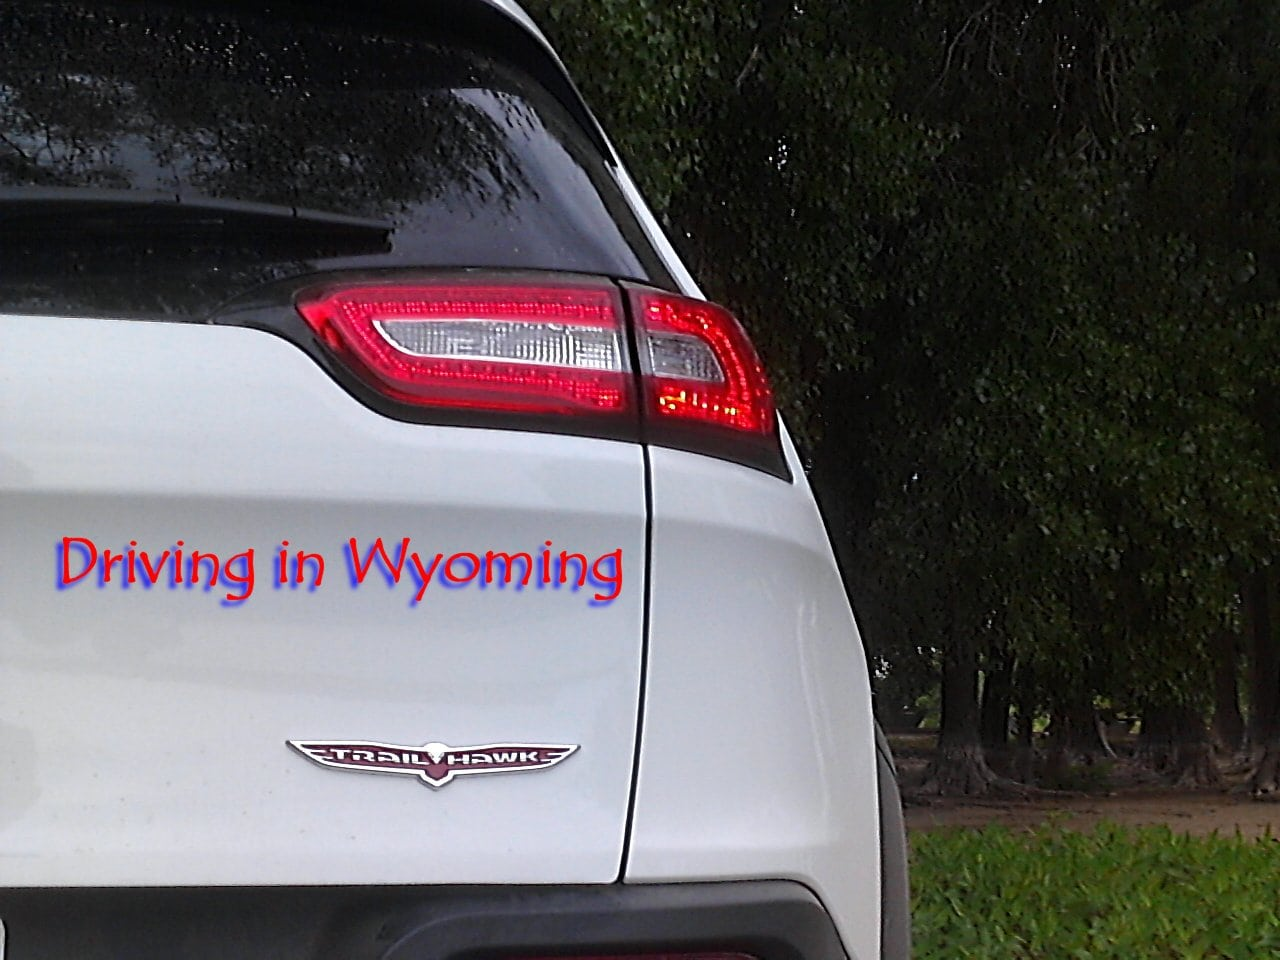 2014 Jeep Cherokee Trailhawk Driving in Wyoming Quick Poll